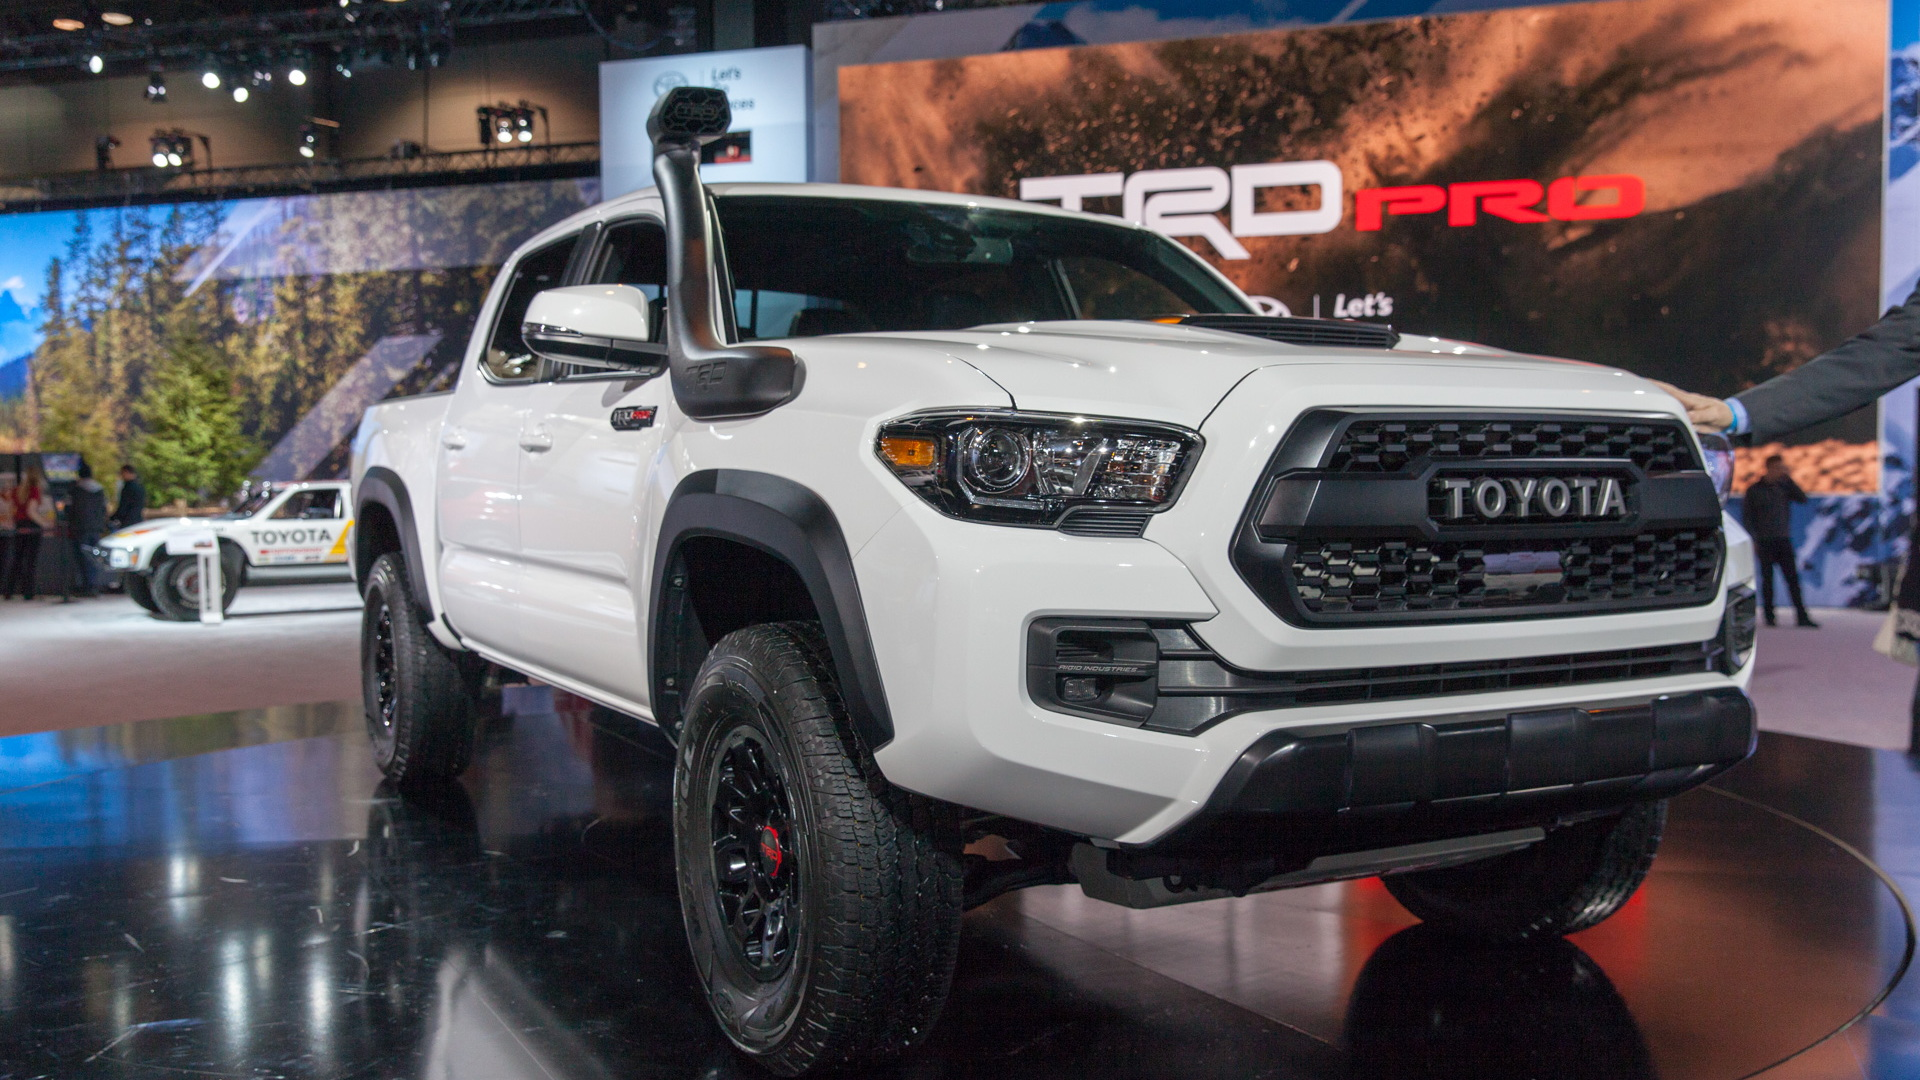 2019 Toyota Trd Pro Off Road Lineup Debuts In Chicago